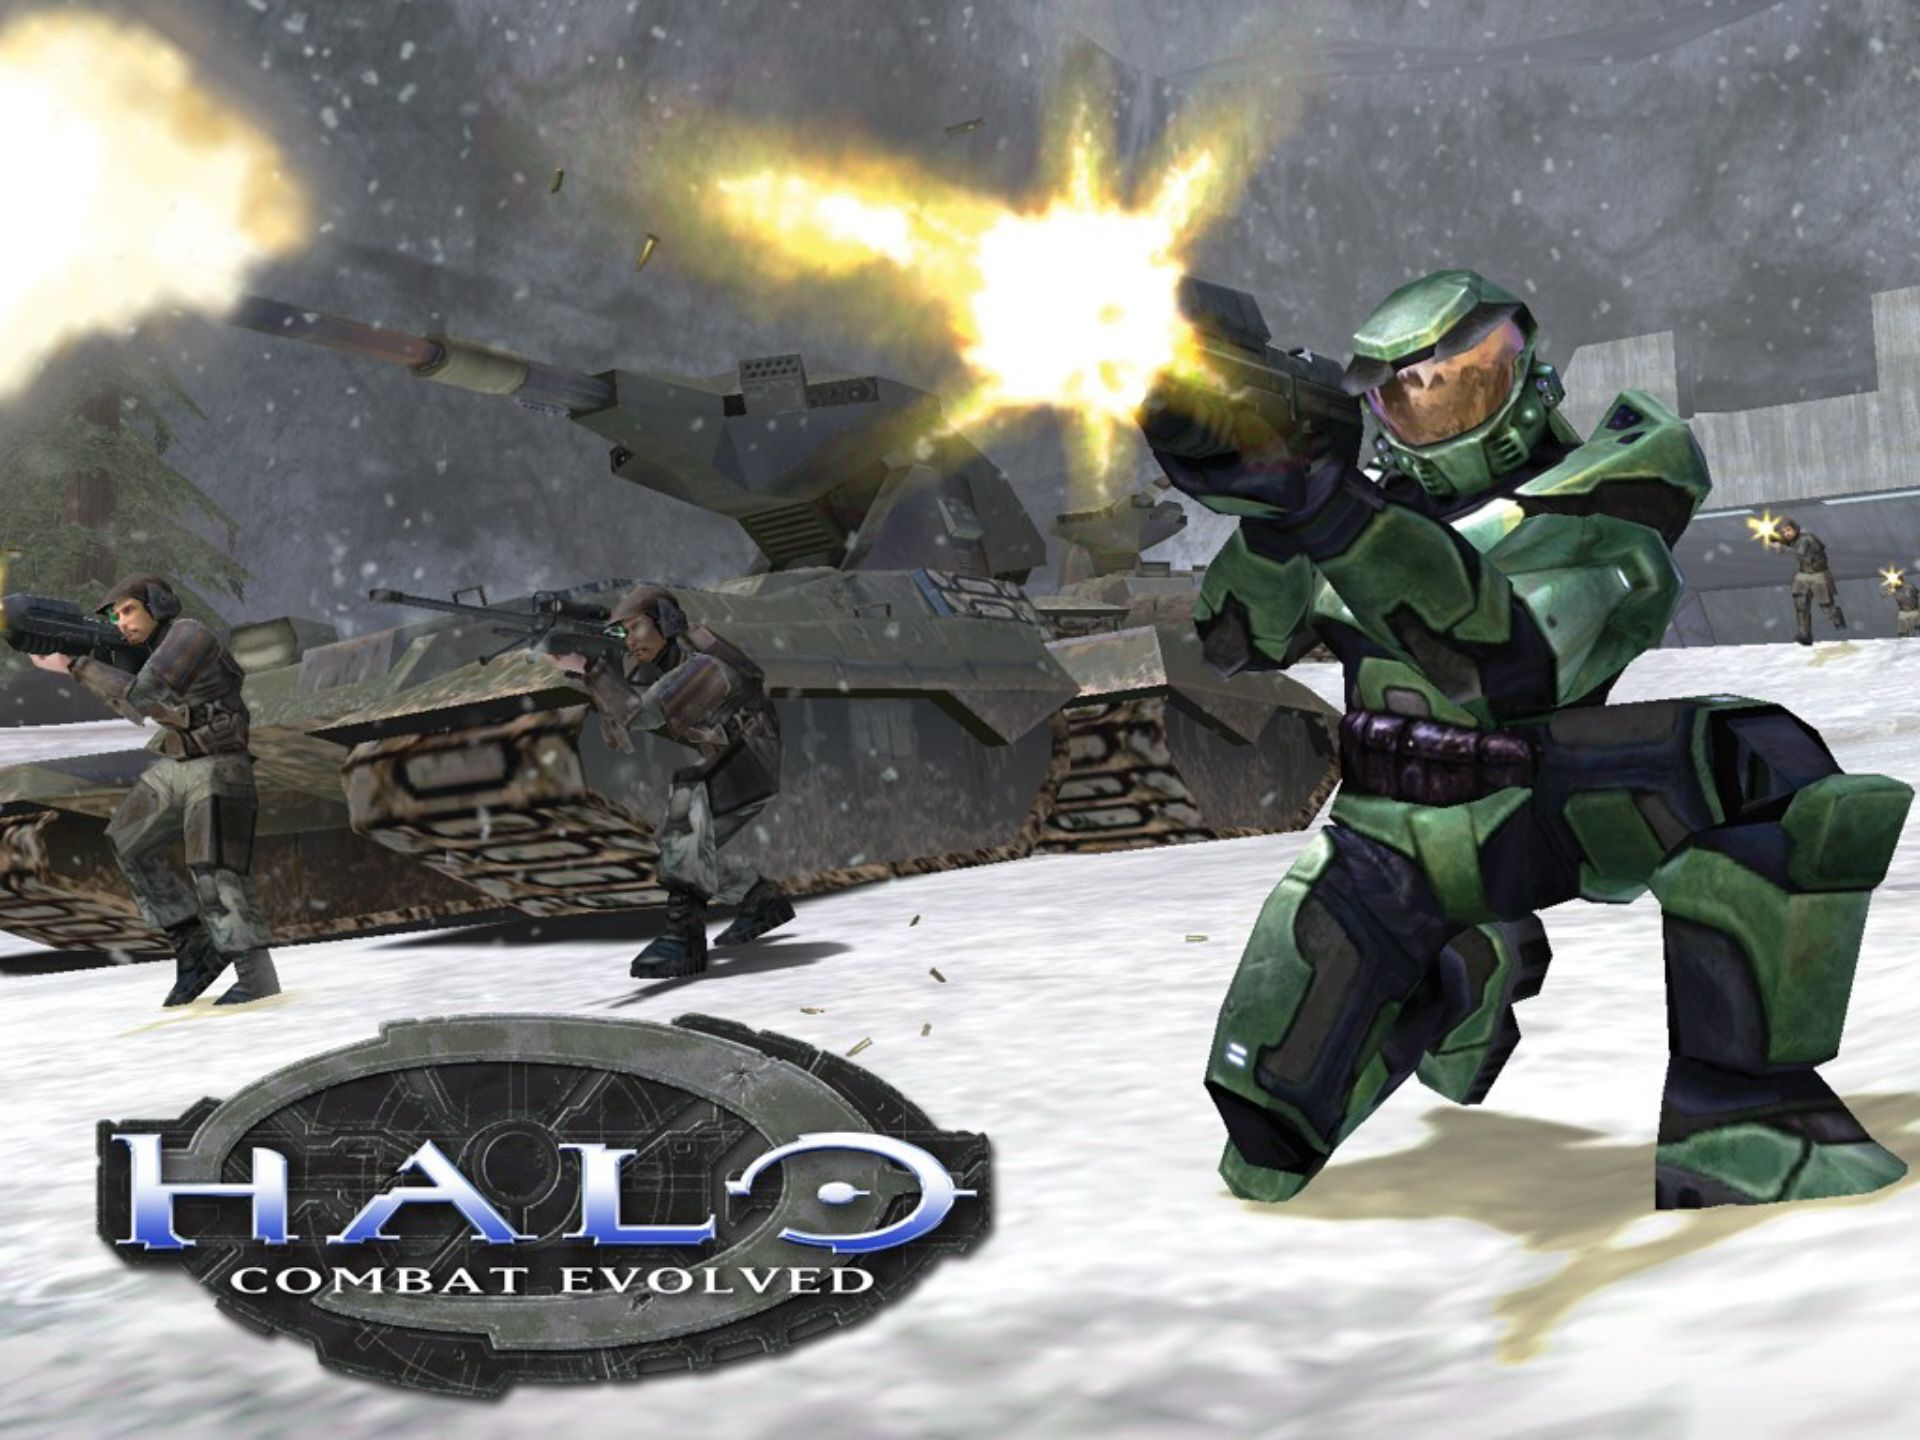 Halo 1 Wallpapers - Top Free Halo 1 Backgrounds - WallpaperAccess